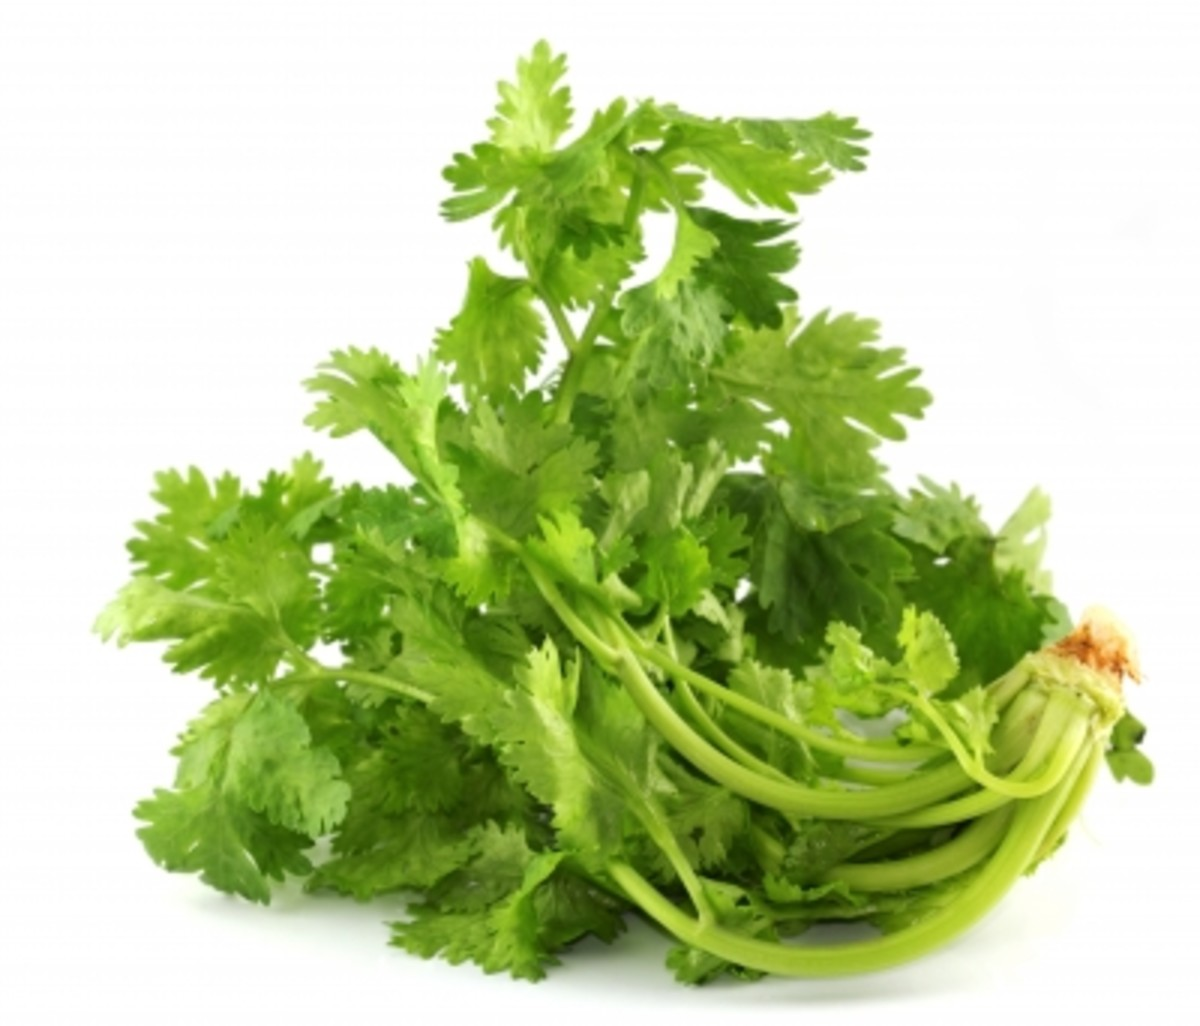 Benefits of Coriander, Ground Coriander and Its Seeds for Health